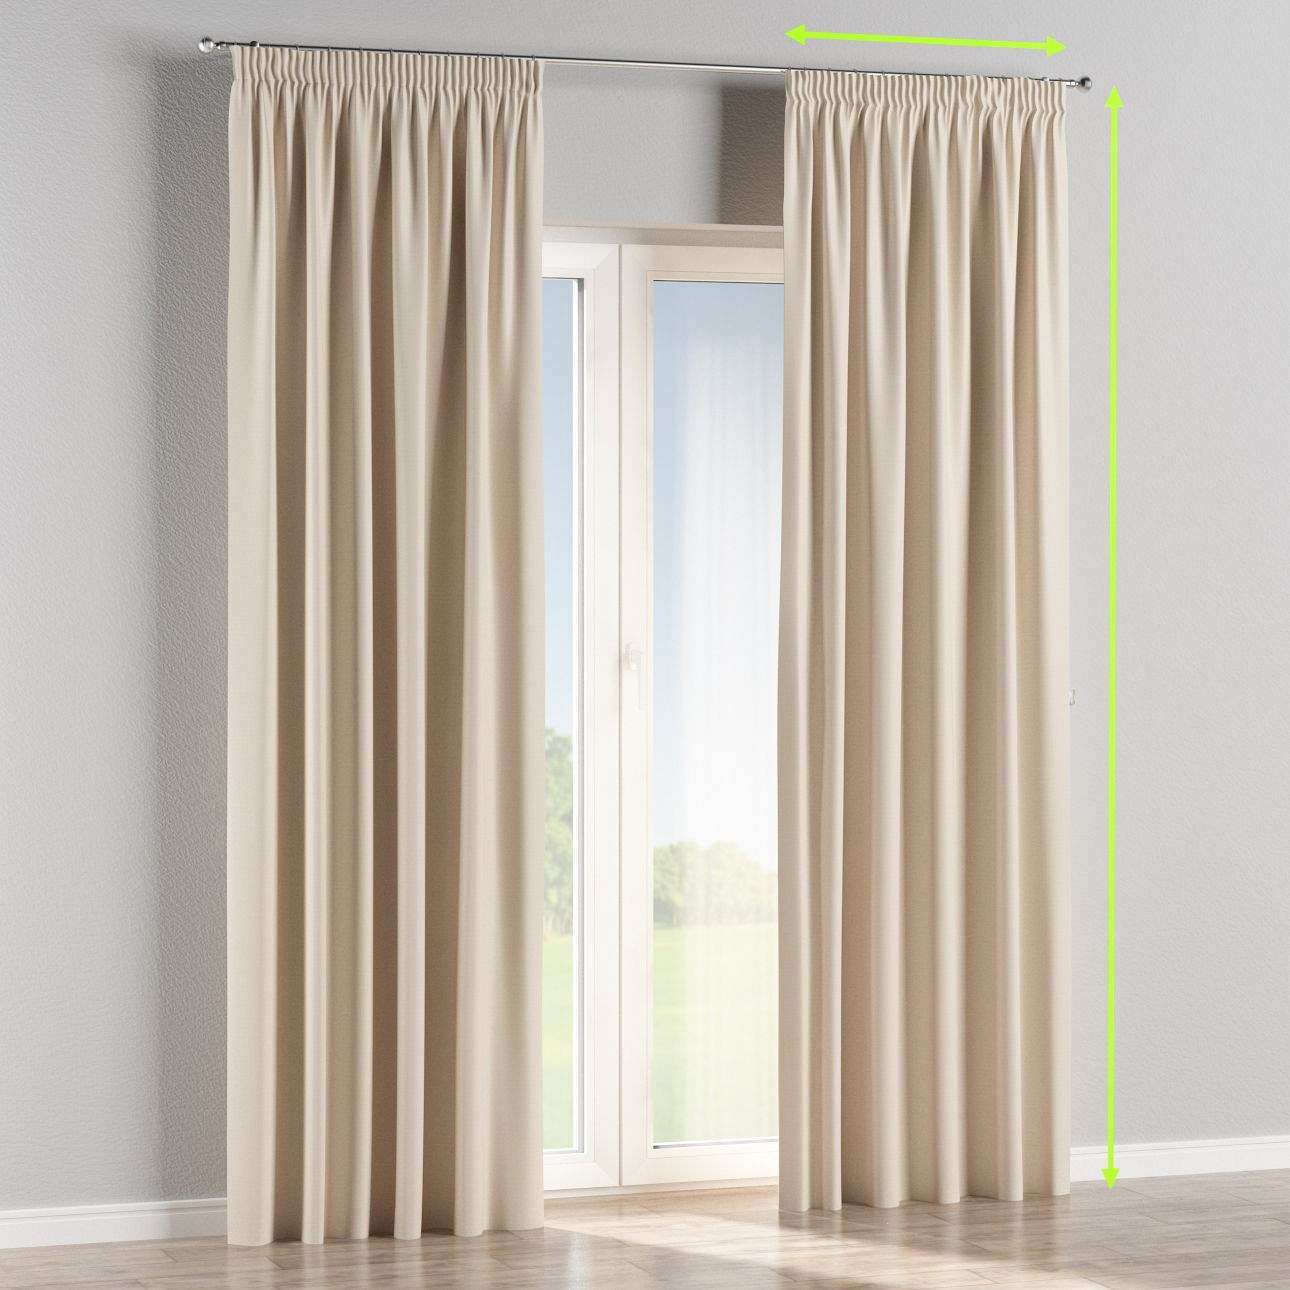 Pencil pleat curtain in collection Blackout, fabric: 269-66